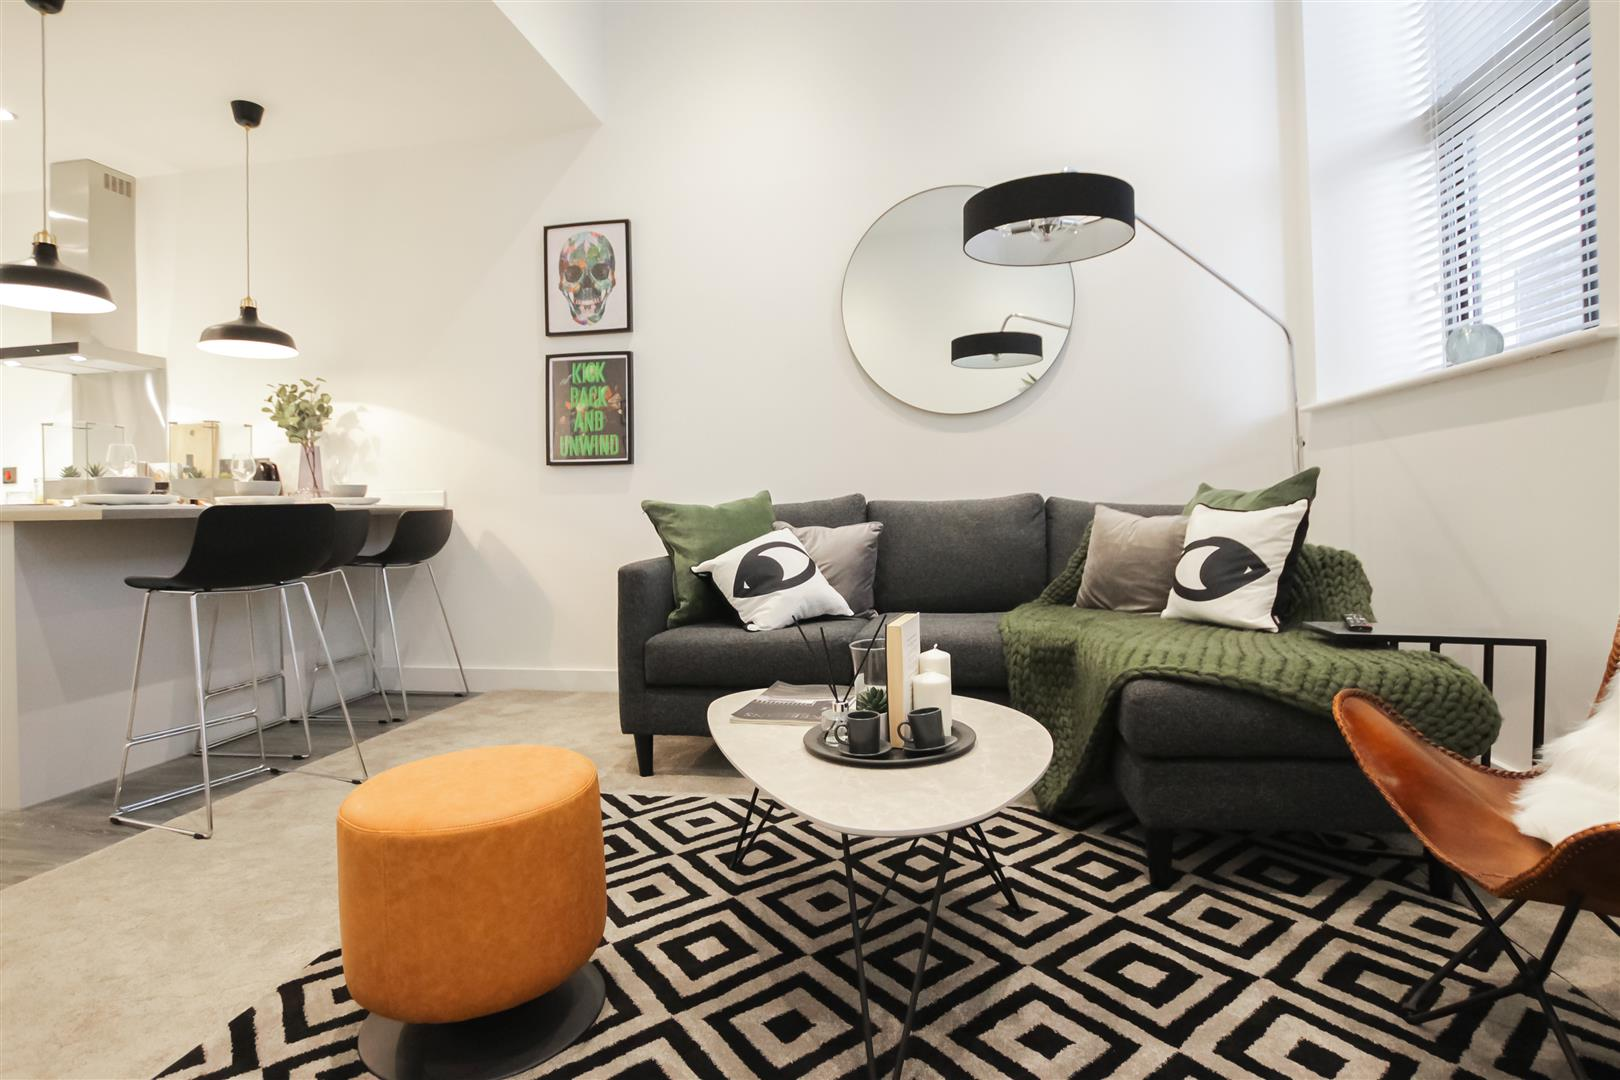 2 Bedroom Apartment For Sale - Main Image